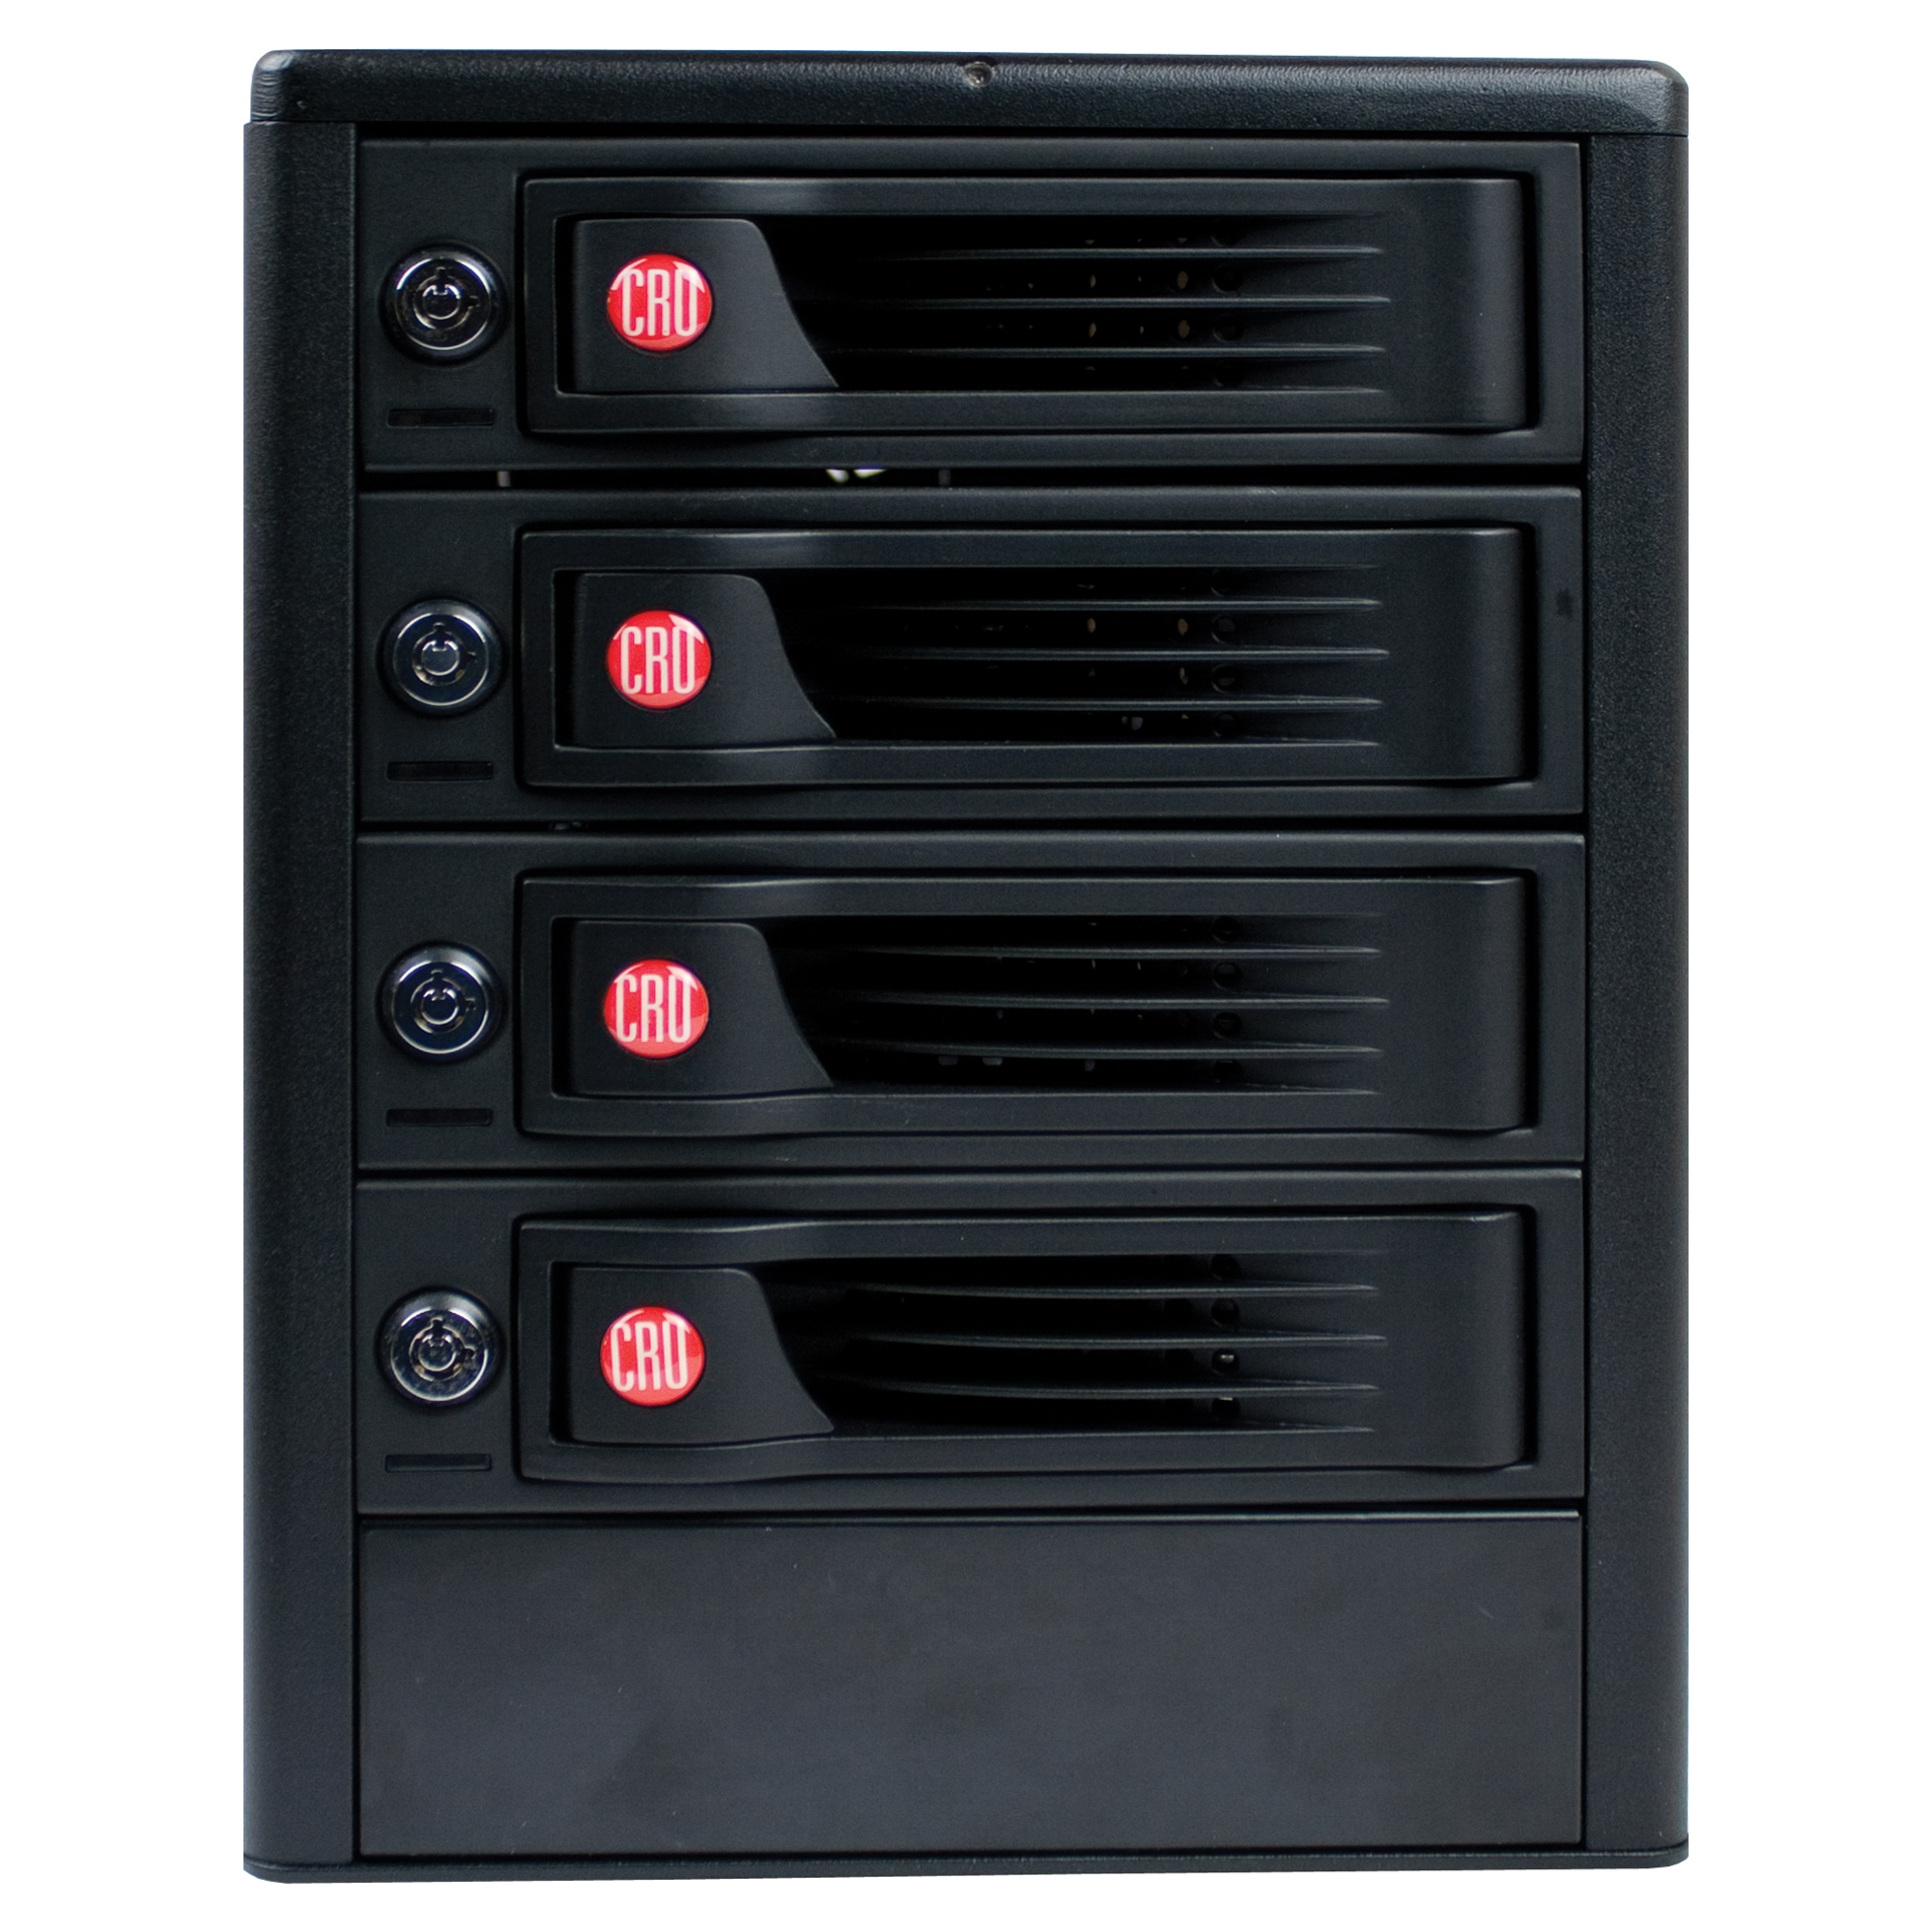 RTX RTX410-XJ DAS Array - 4 x HDD Supported - 8 TB Installed HDD Capacity - 4 x Total Bays - Mini-SAS Tower